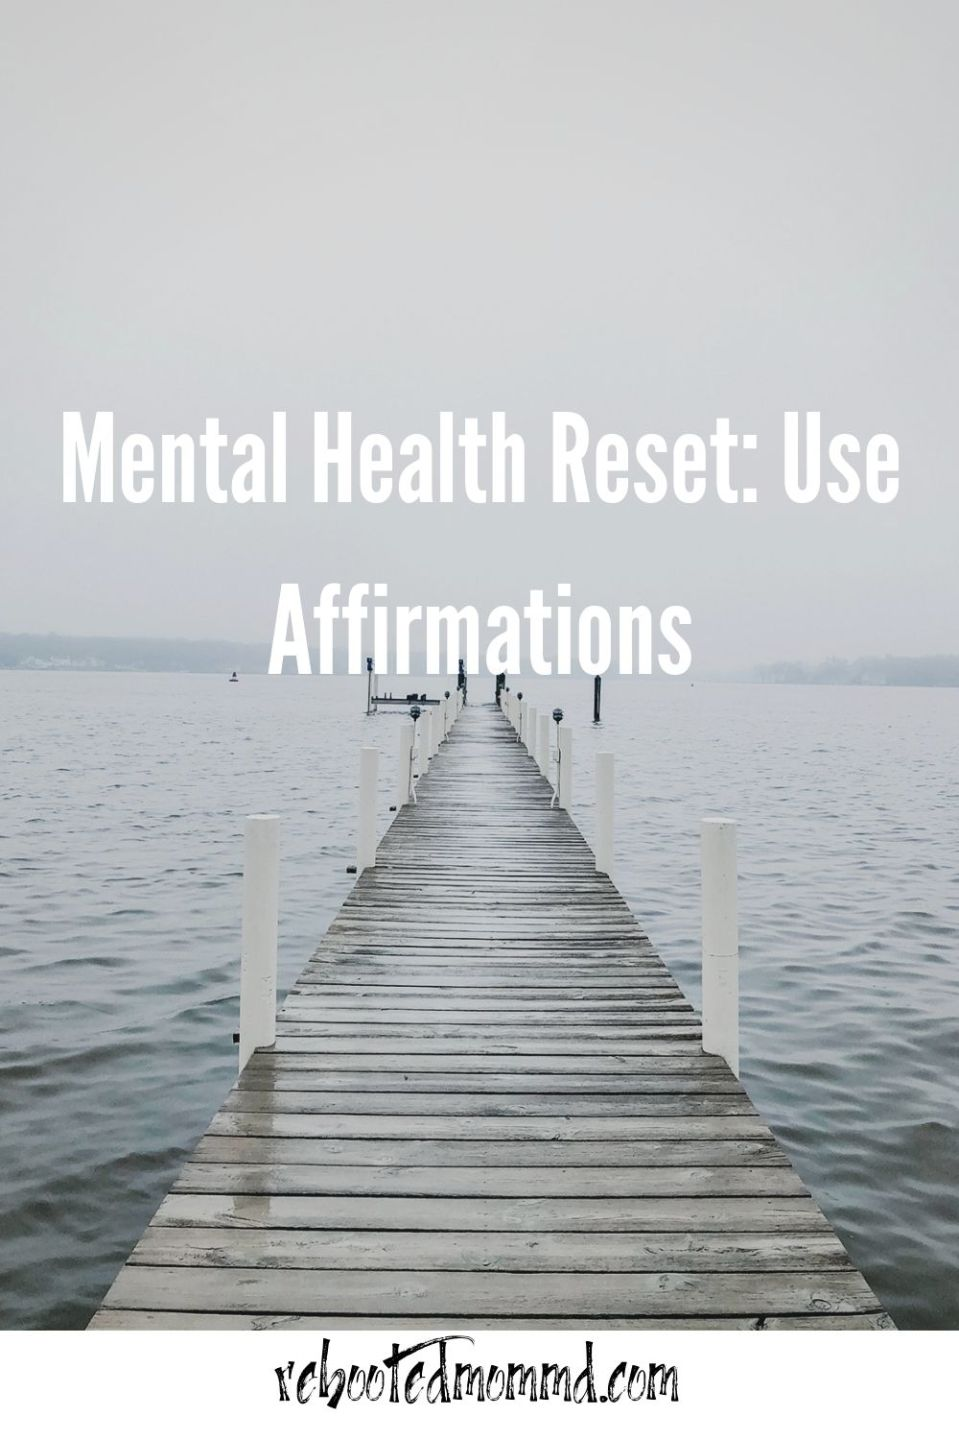 Time for a Mental Health Reset: Use Affirmations